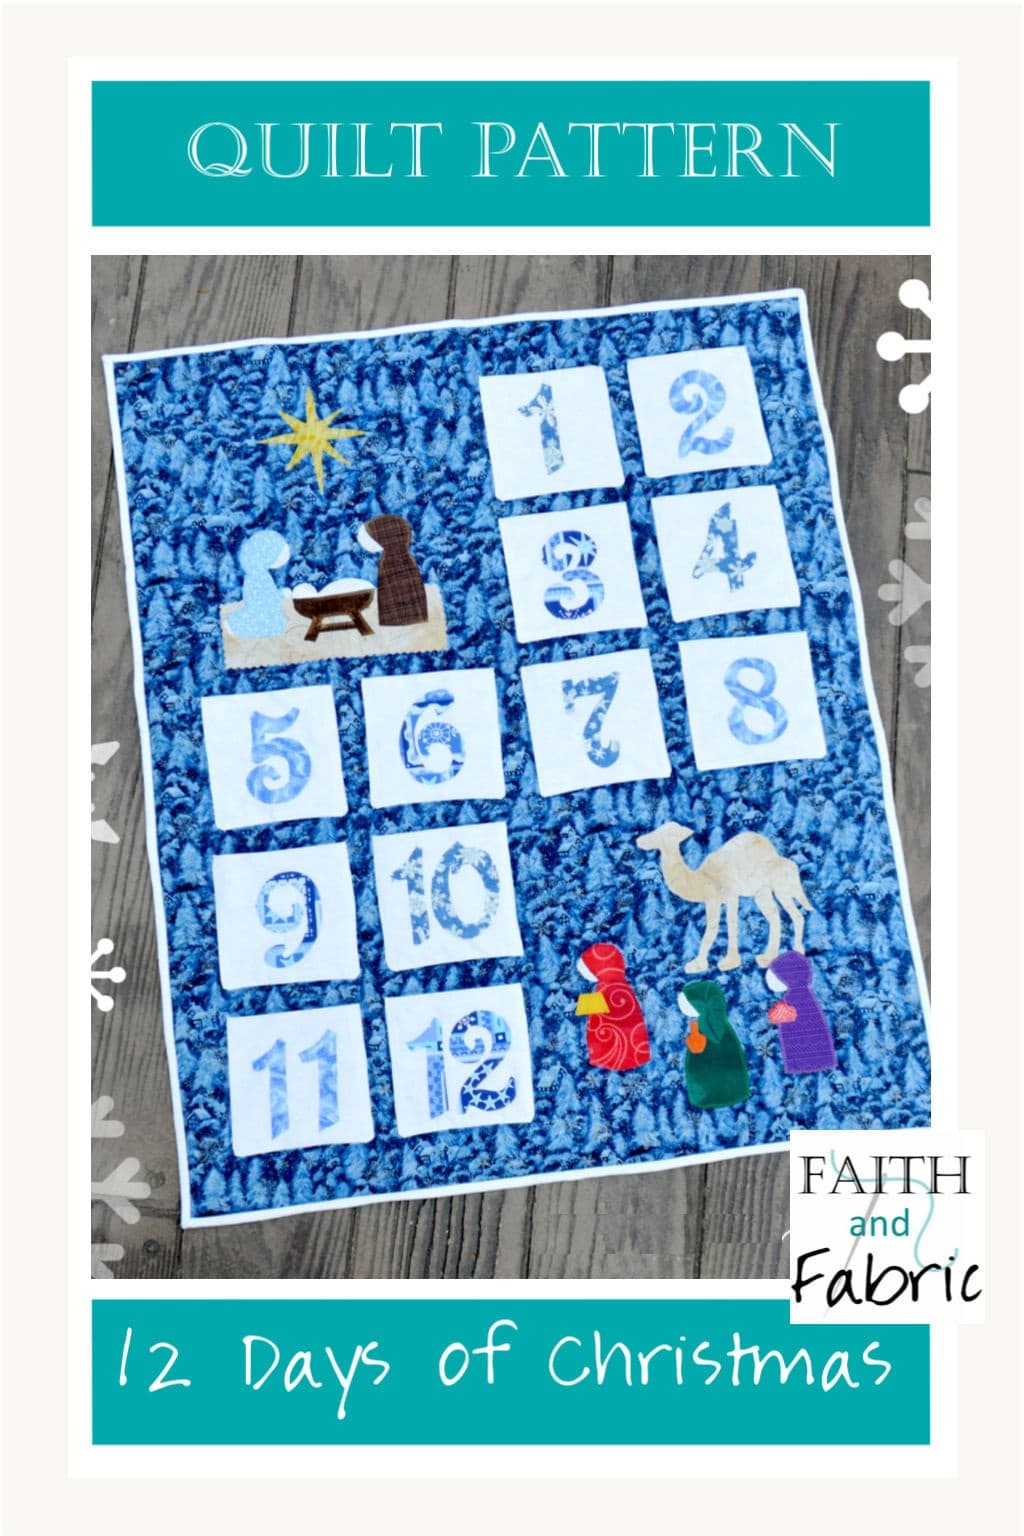 This interactive quilt creates twelve pockets, ready to be filled with sweet treats during the 12 Days of Christmas! Created by Faith and Fabric.